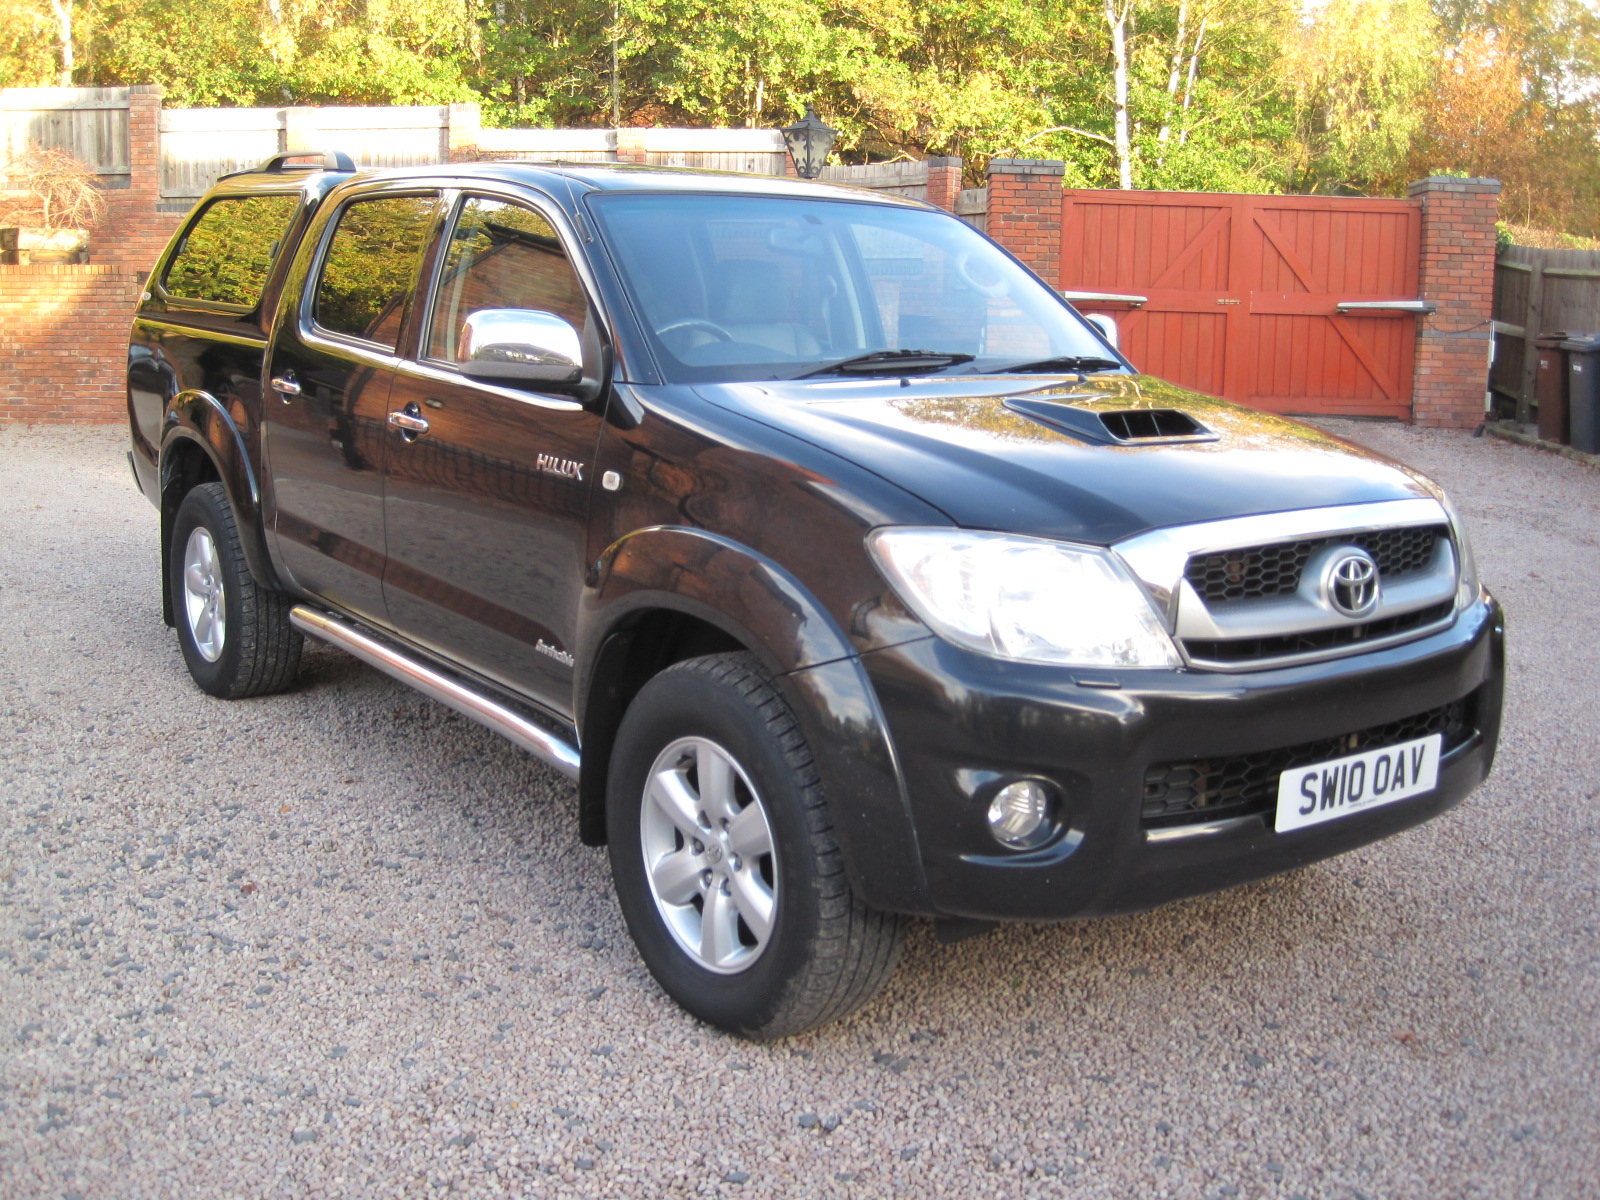 2010 10 Toyota Hilux 3.0 D-4D Invincible Double Cab Pickup ABSOLUTELY STUNNING TRUCK VERY LOW MILES NO VAT!